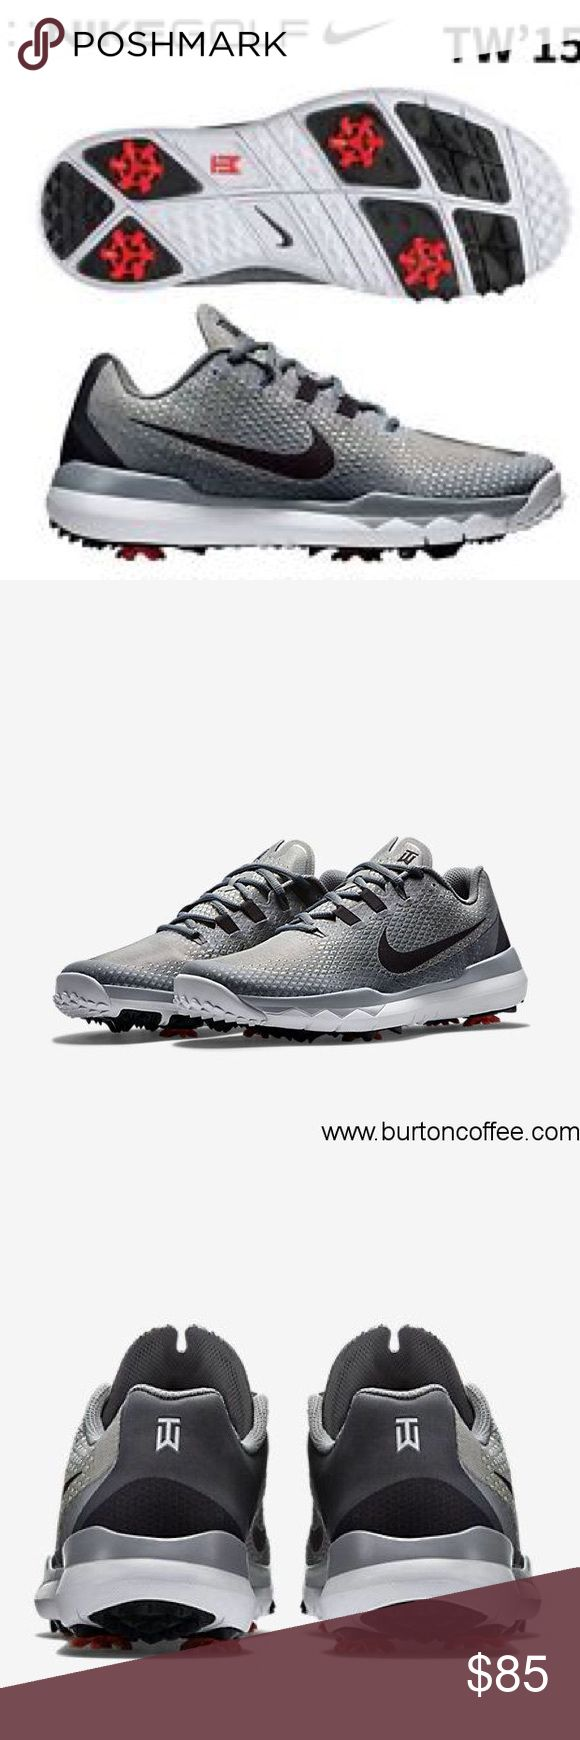 NWT Nike Tiger Woods Men Golf Shoe Please make offers!                                                               Tiger Woods Golf Shoe Men size 9W  Gray and Black Original price $250 Brand new never worn! Nike Shoes Athletic Shoes